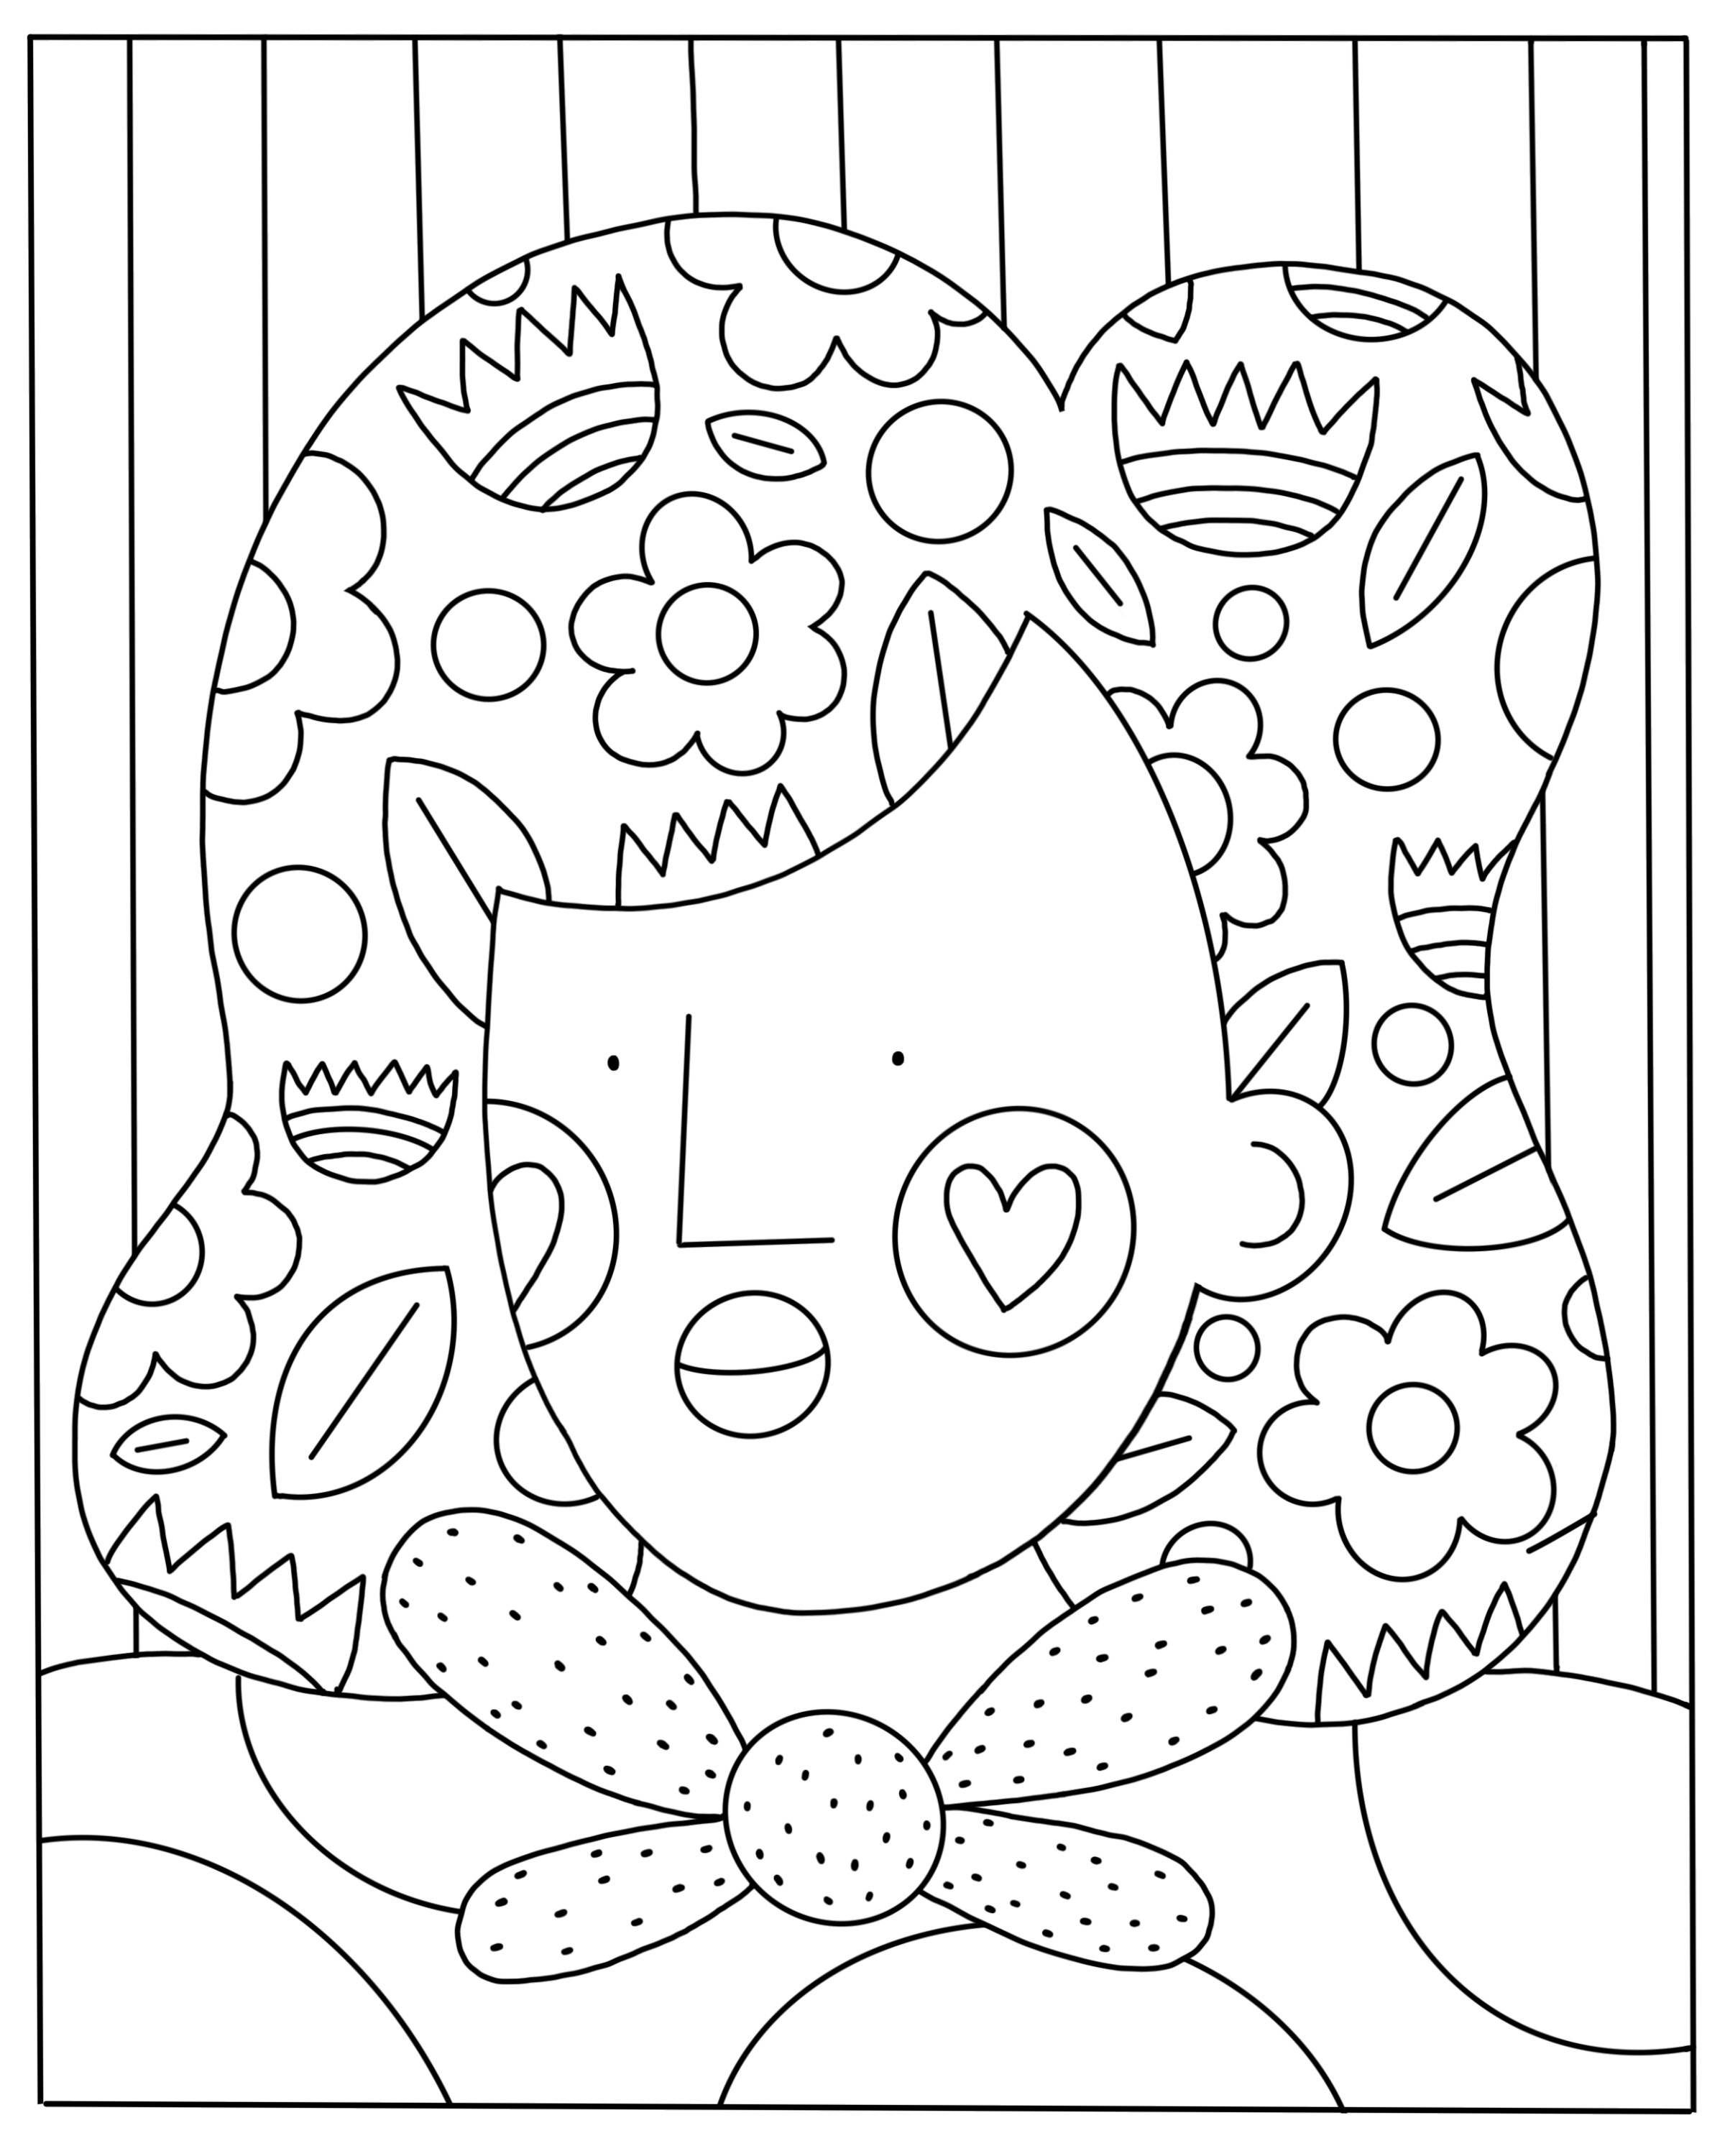 Free Stay Home, Stay Safe House Coloring Page - Make Breaks | 1250x1000